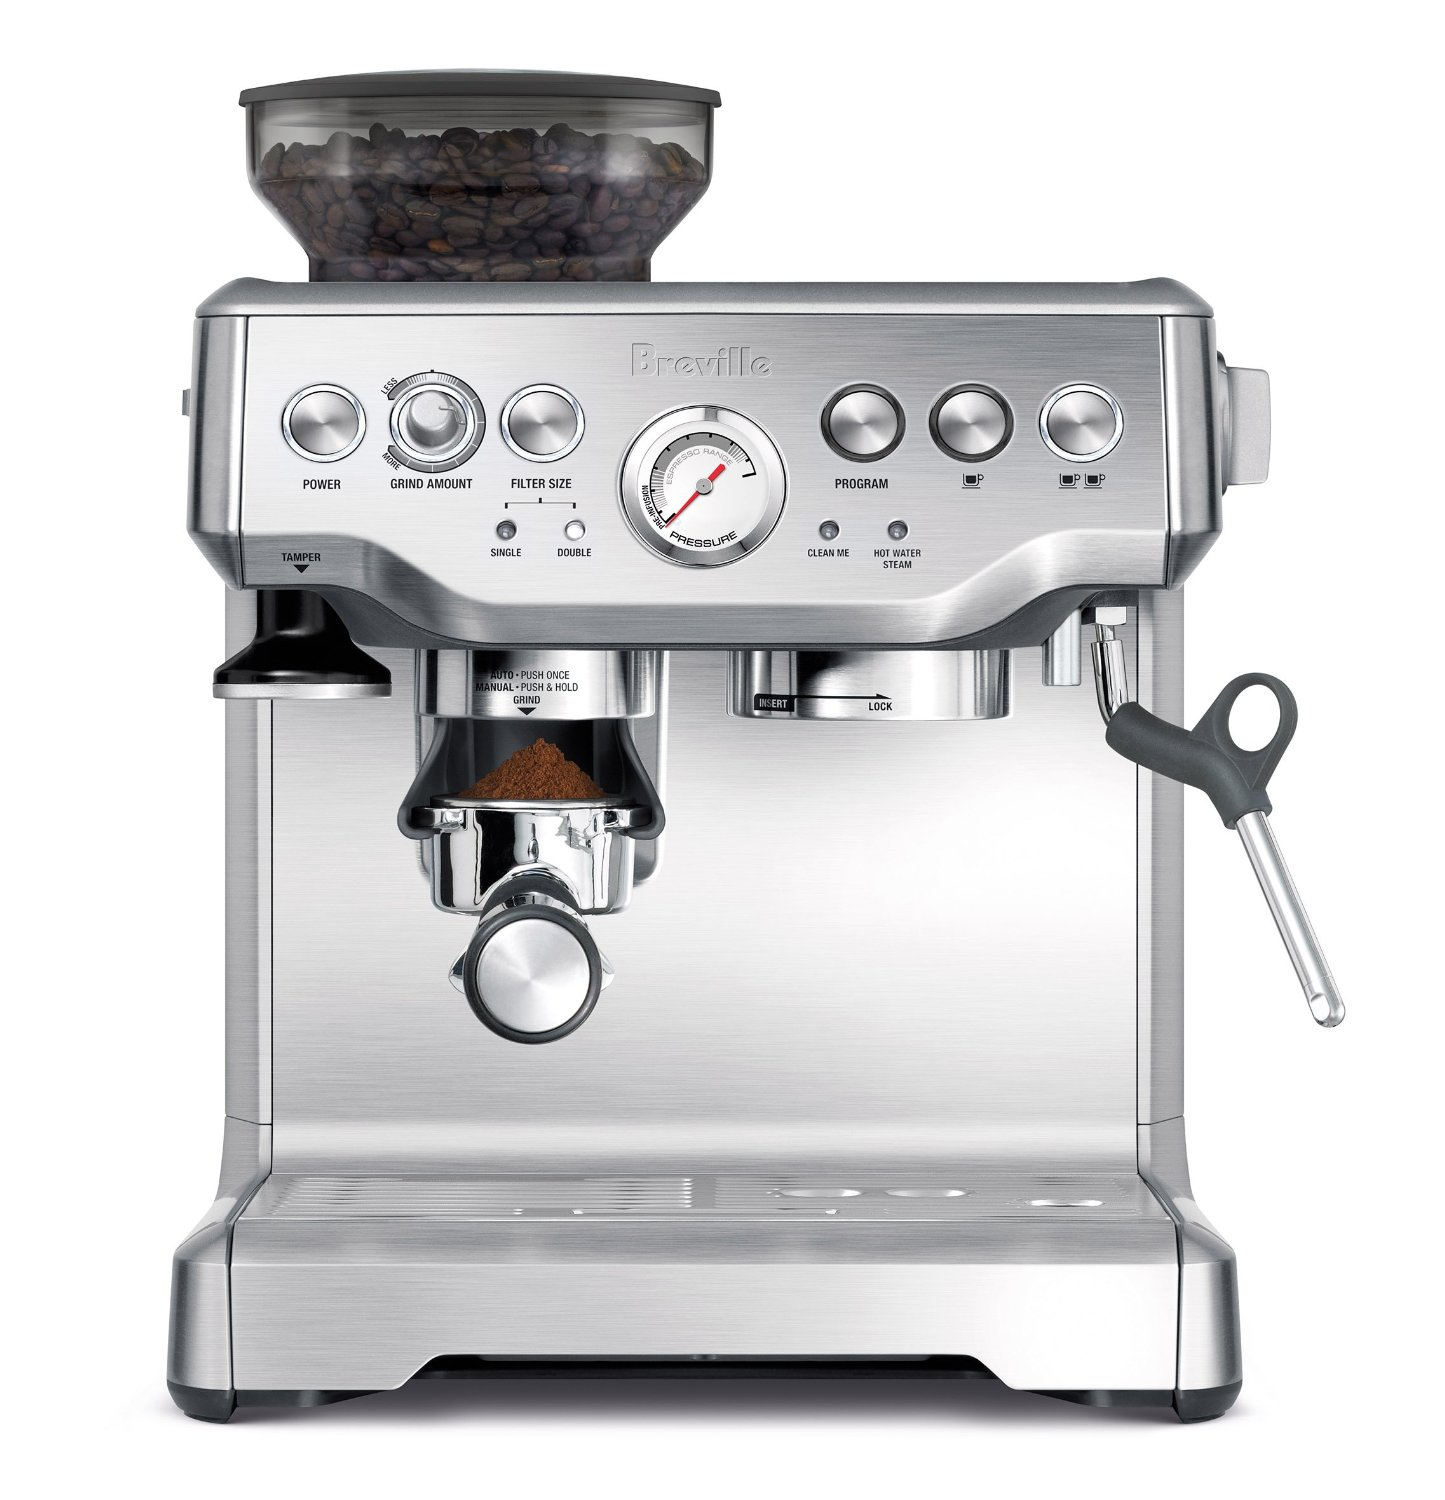 10 Best Home Coffee Makers - Top Rated Coffee Machines You Can Buy